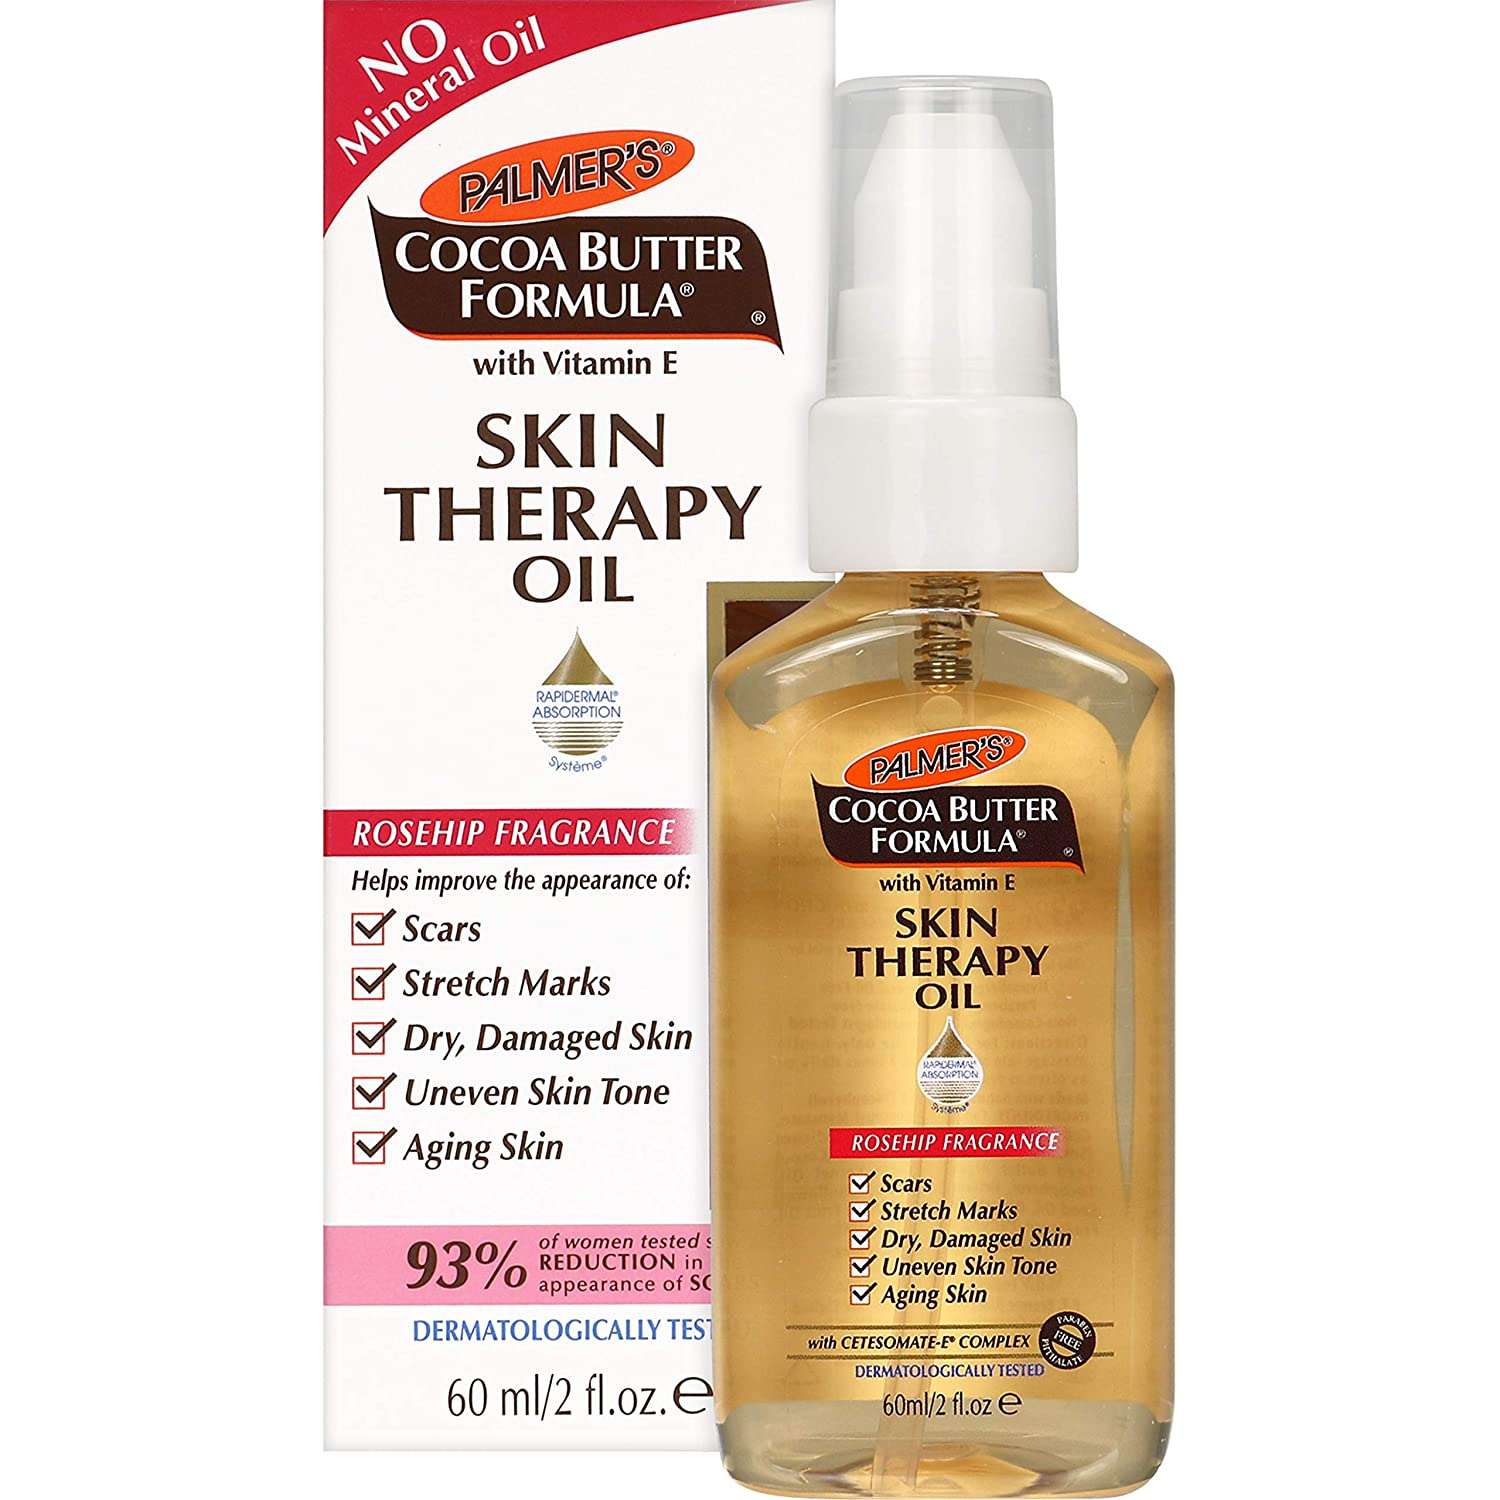 Palmer's Cocoa Butter Formula Skin Therapy Moisturizing Body Oil with Vitamin E, Rosehip Fragrance | 2 Ounces